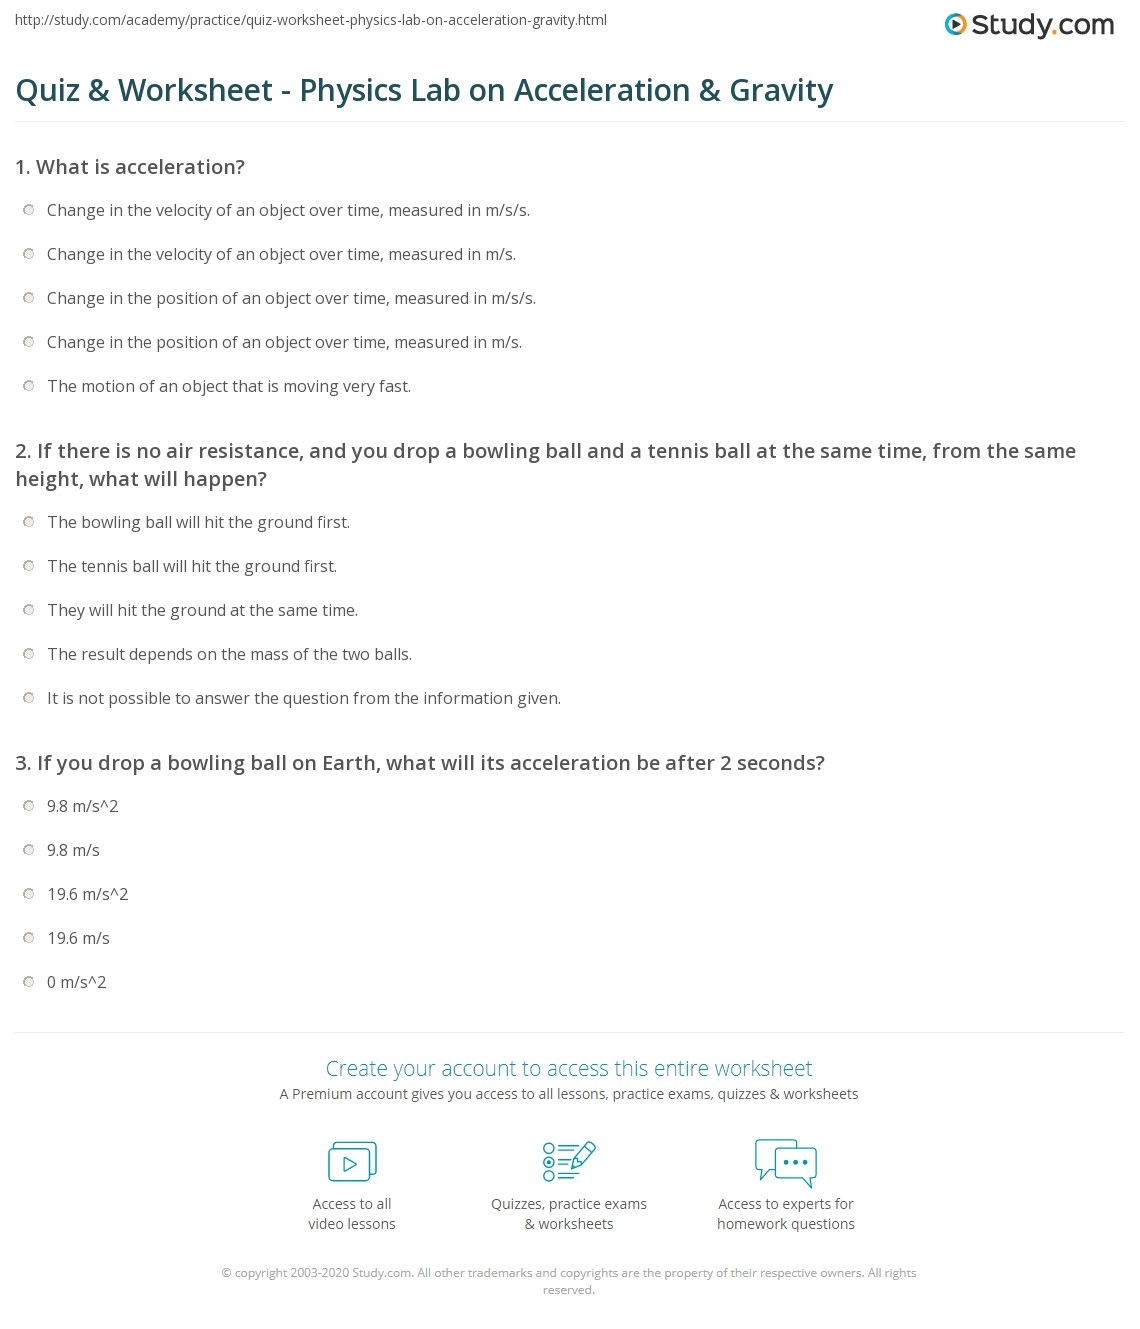 Quiz Worksheet Physics Lab On Acceleration Gravity